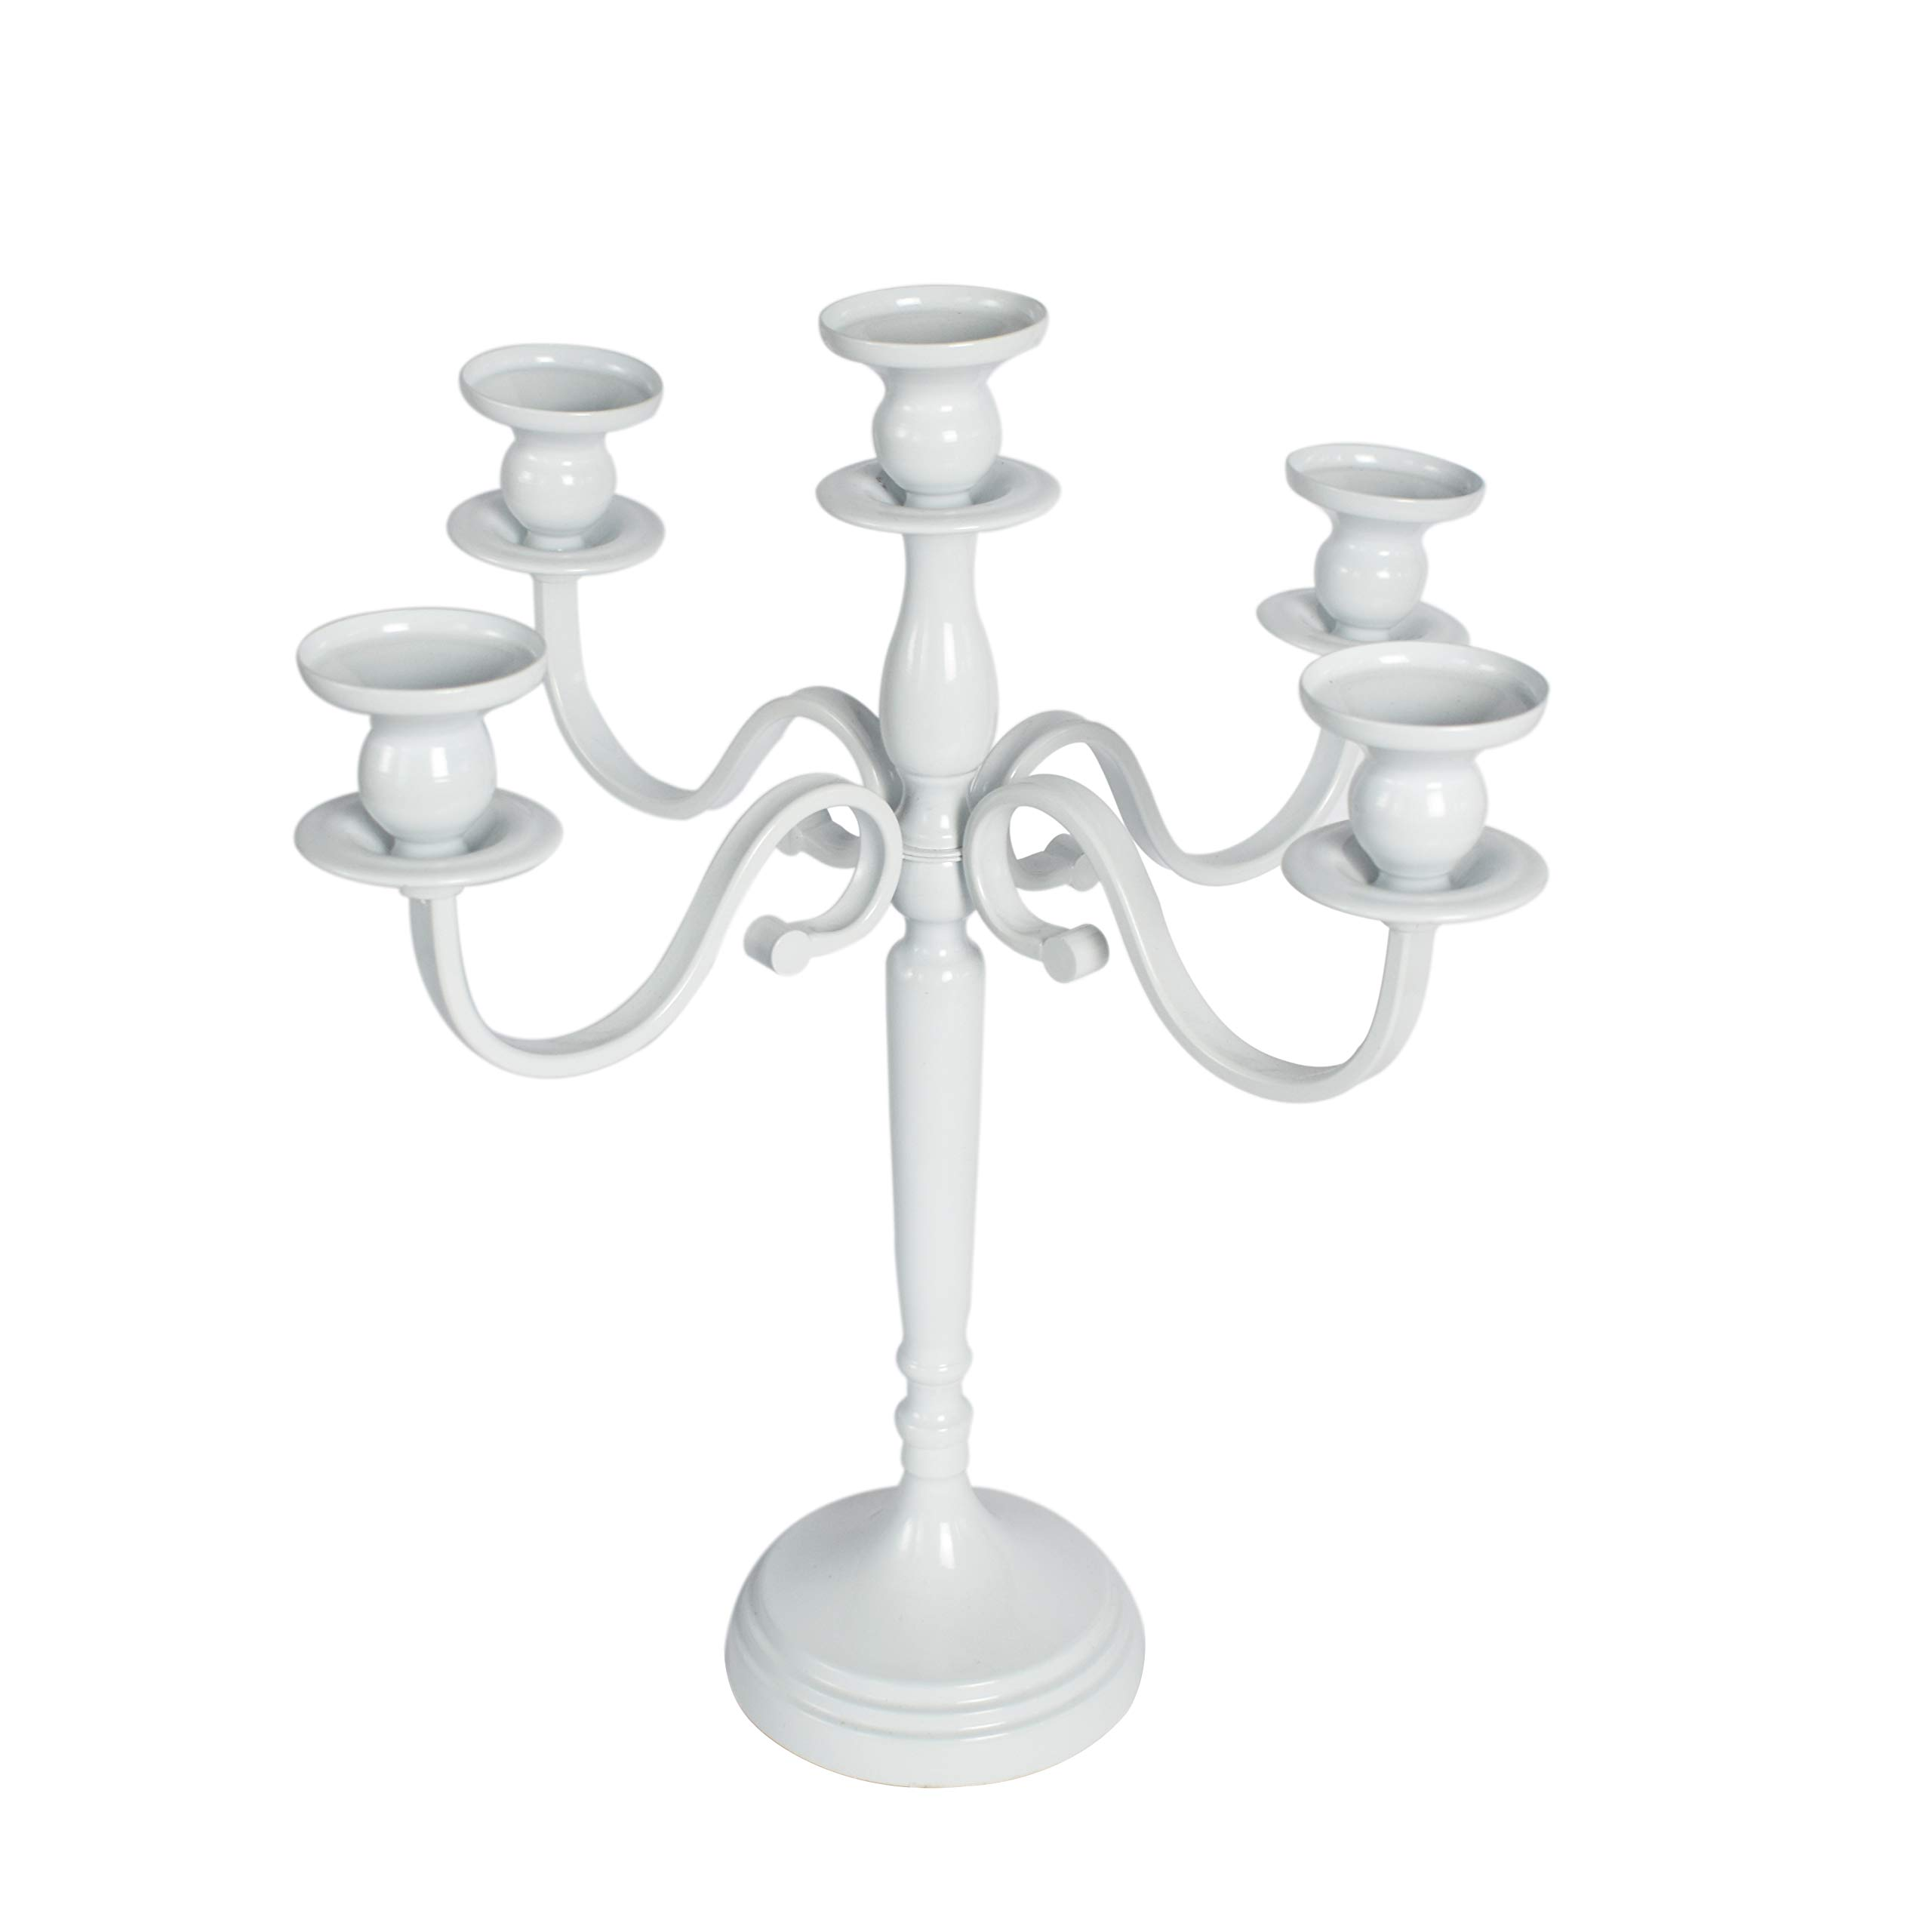 Butterflyevent 5-Candle Metal Candelabra Candlestick 16 inchTall Candle Holder Wedding Event Candelabra Candle Stand (White)